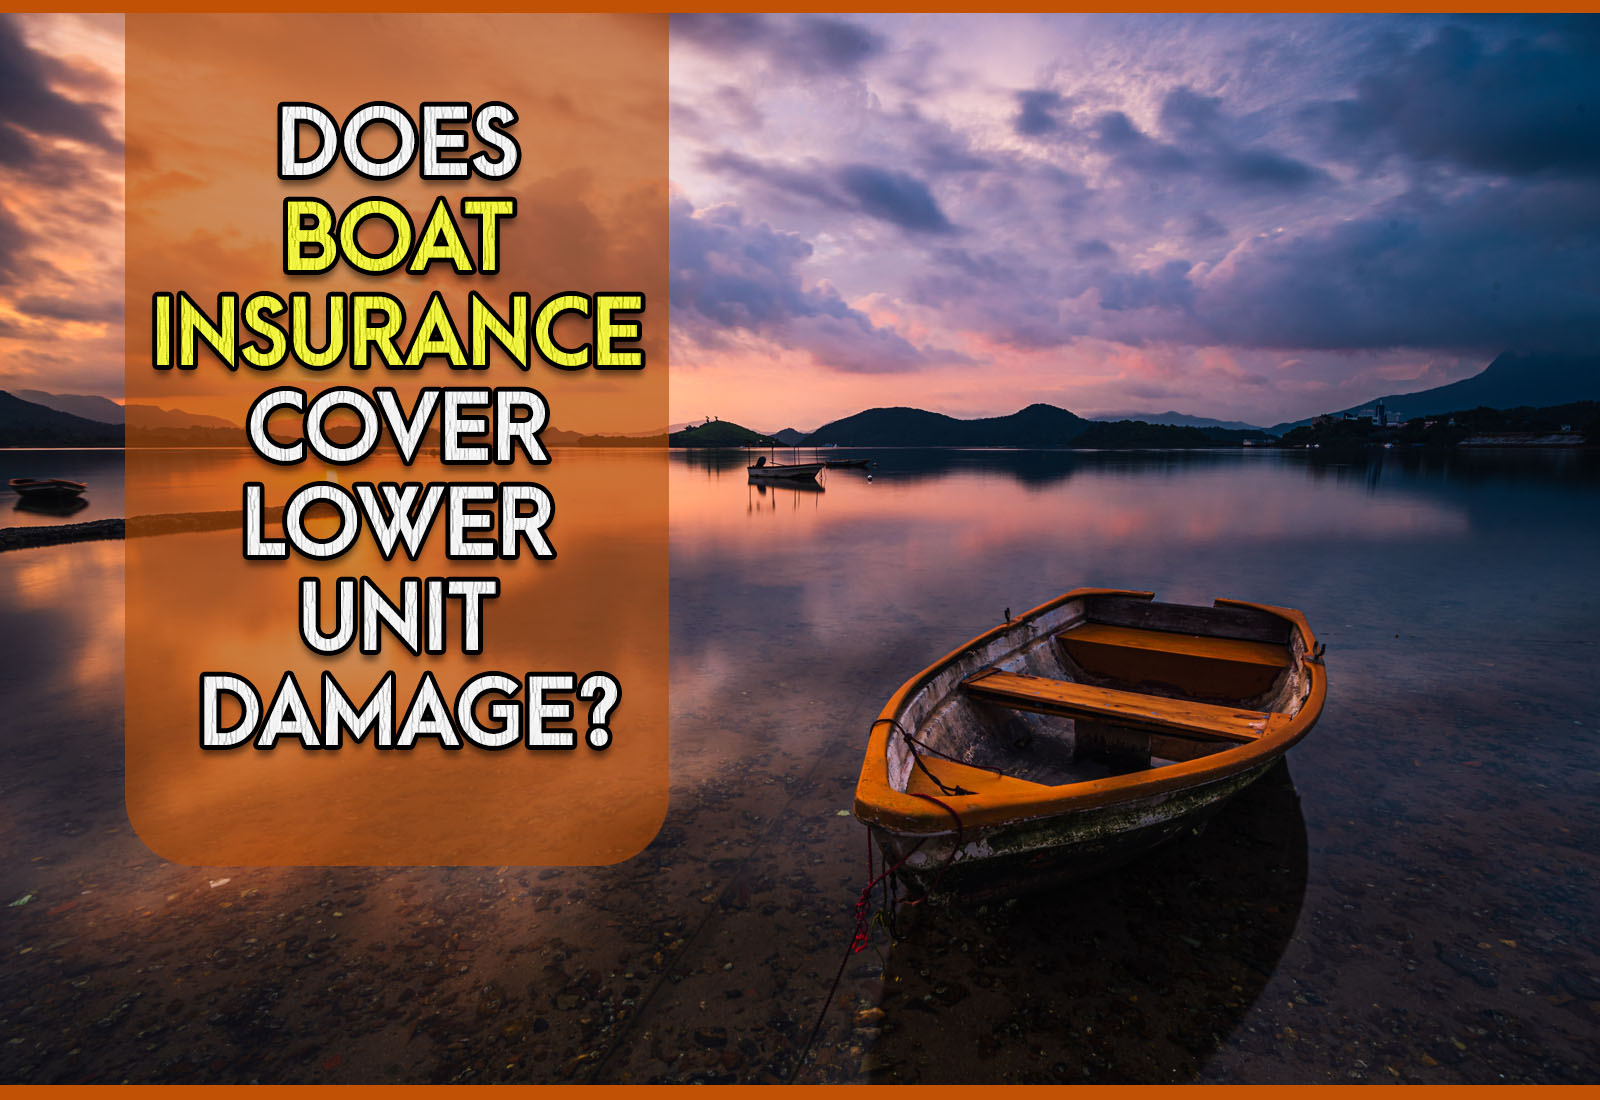 Does Boat Insurance Cover Lower Unit Damage?